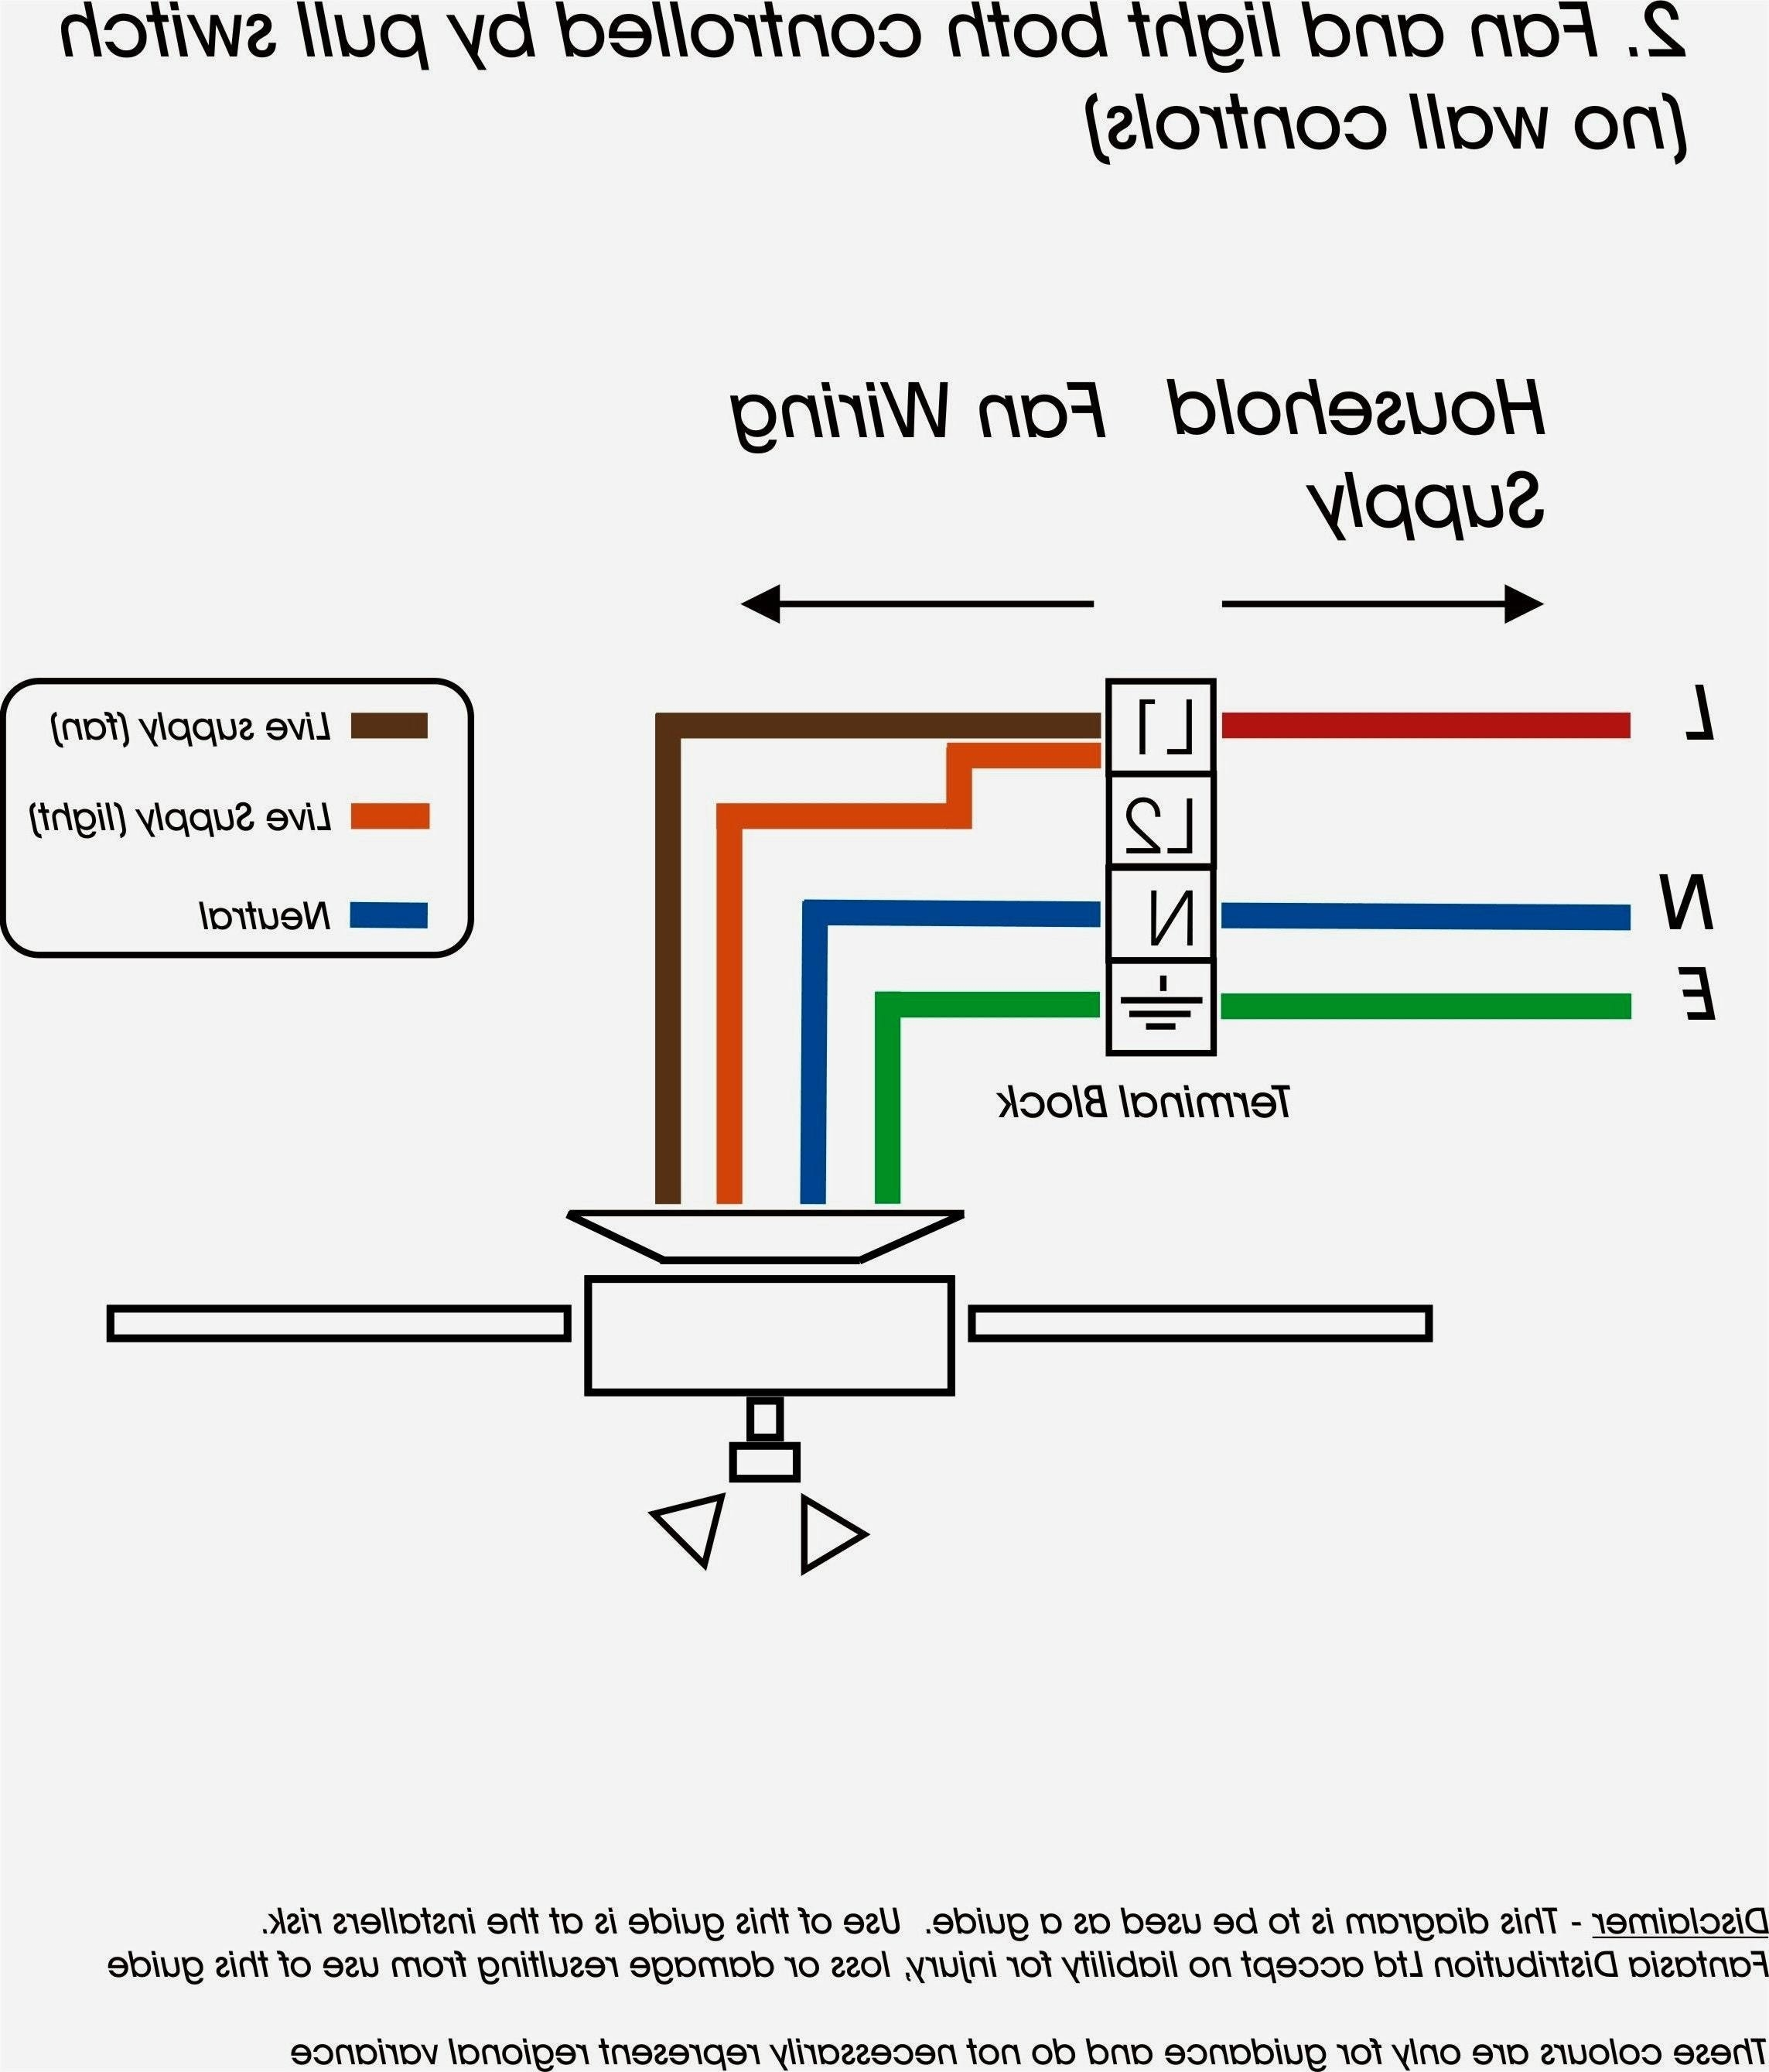 ceiling fan 3 speed wall switch wiring diagram Download-Wiring Diagram For Light And Fan Fresh Wiring Diagram For 3 Speed Ceiling Fan New Ceiling Fan Pull Chain 2-n